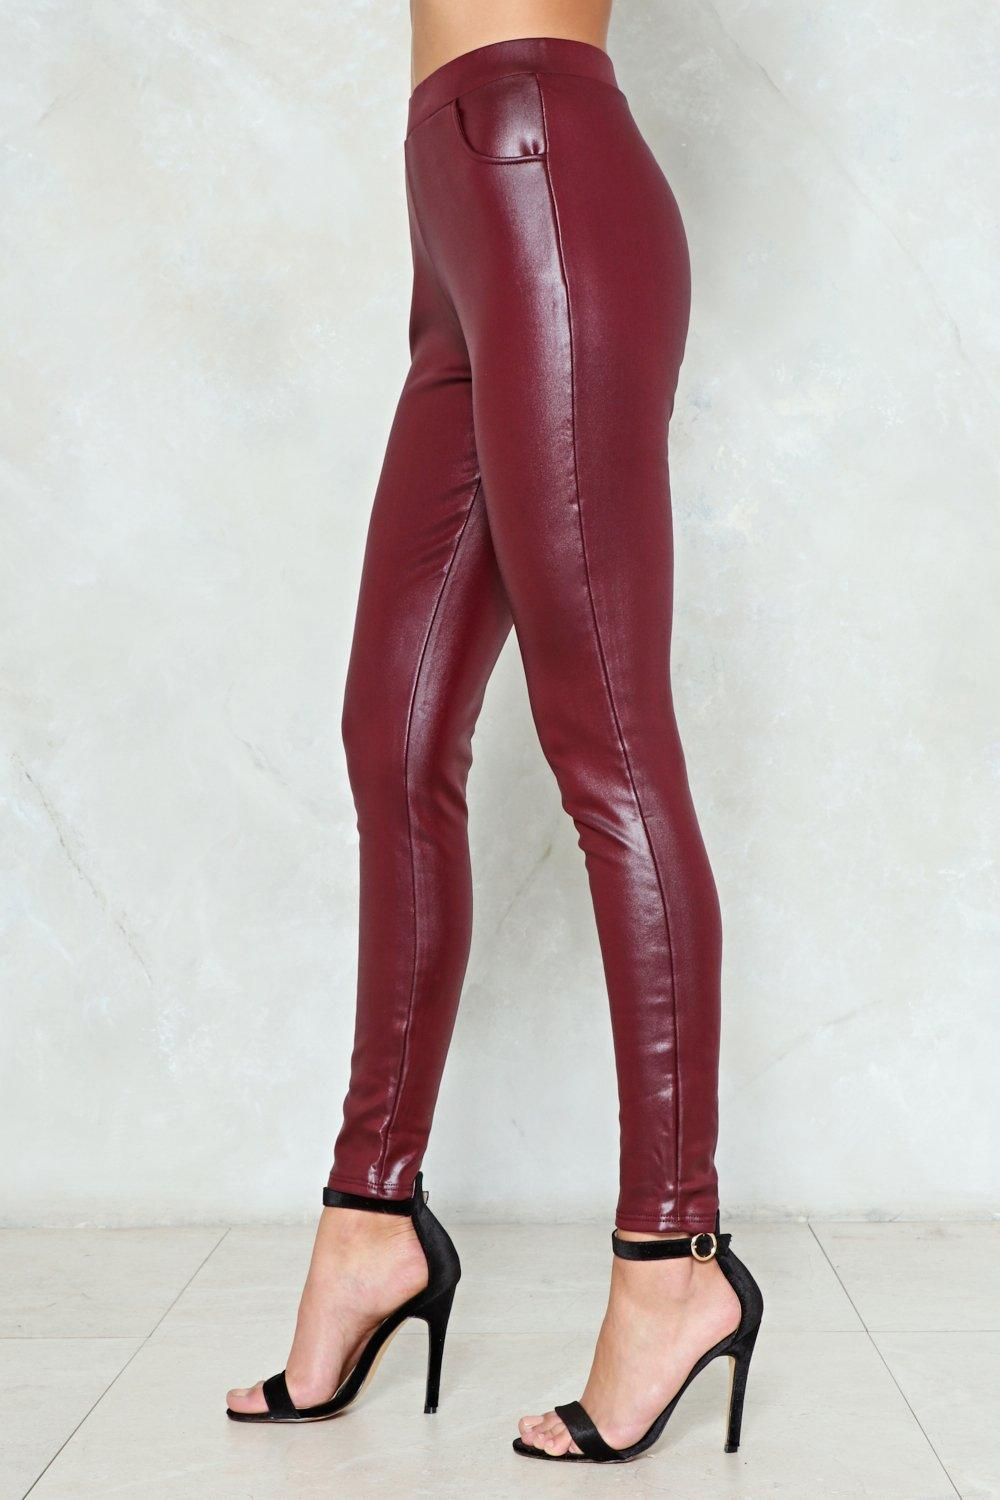 leather leggings pics